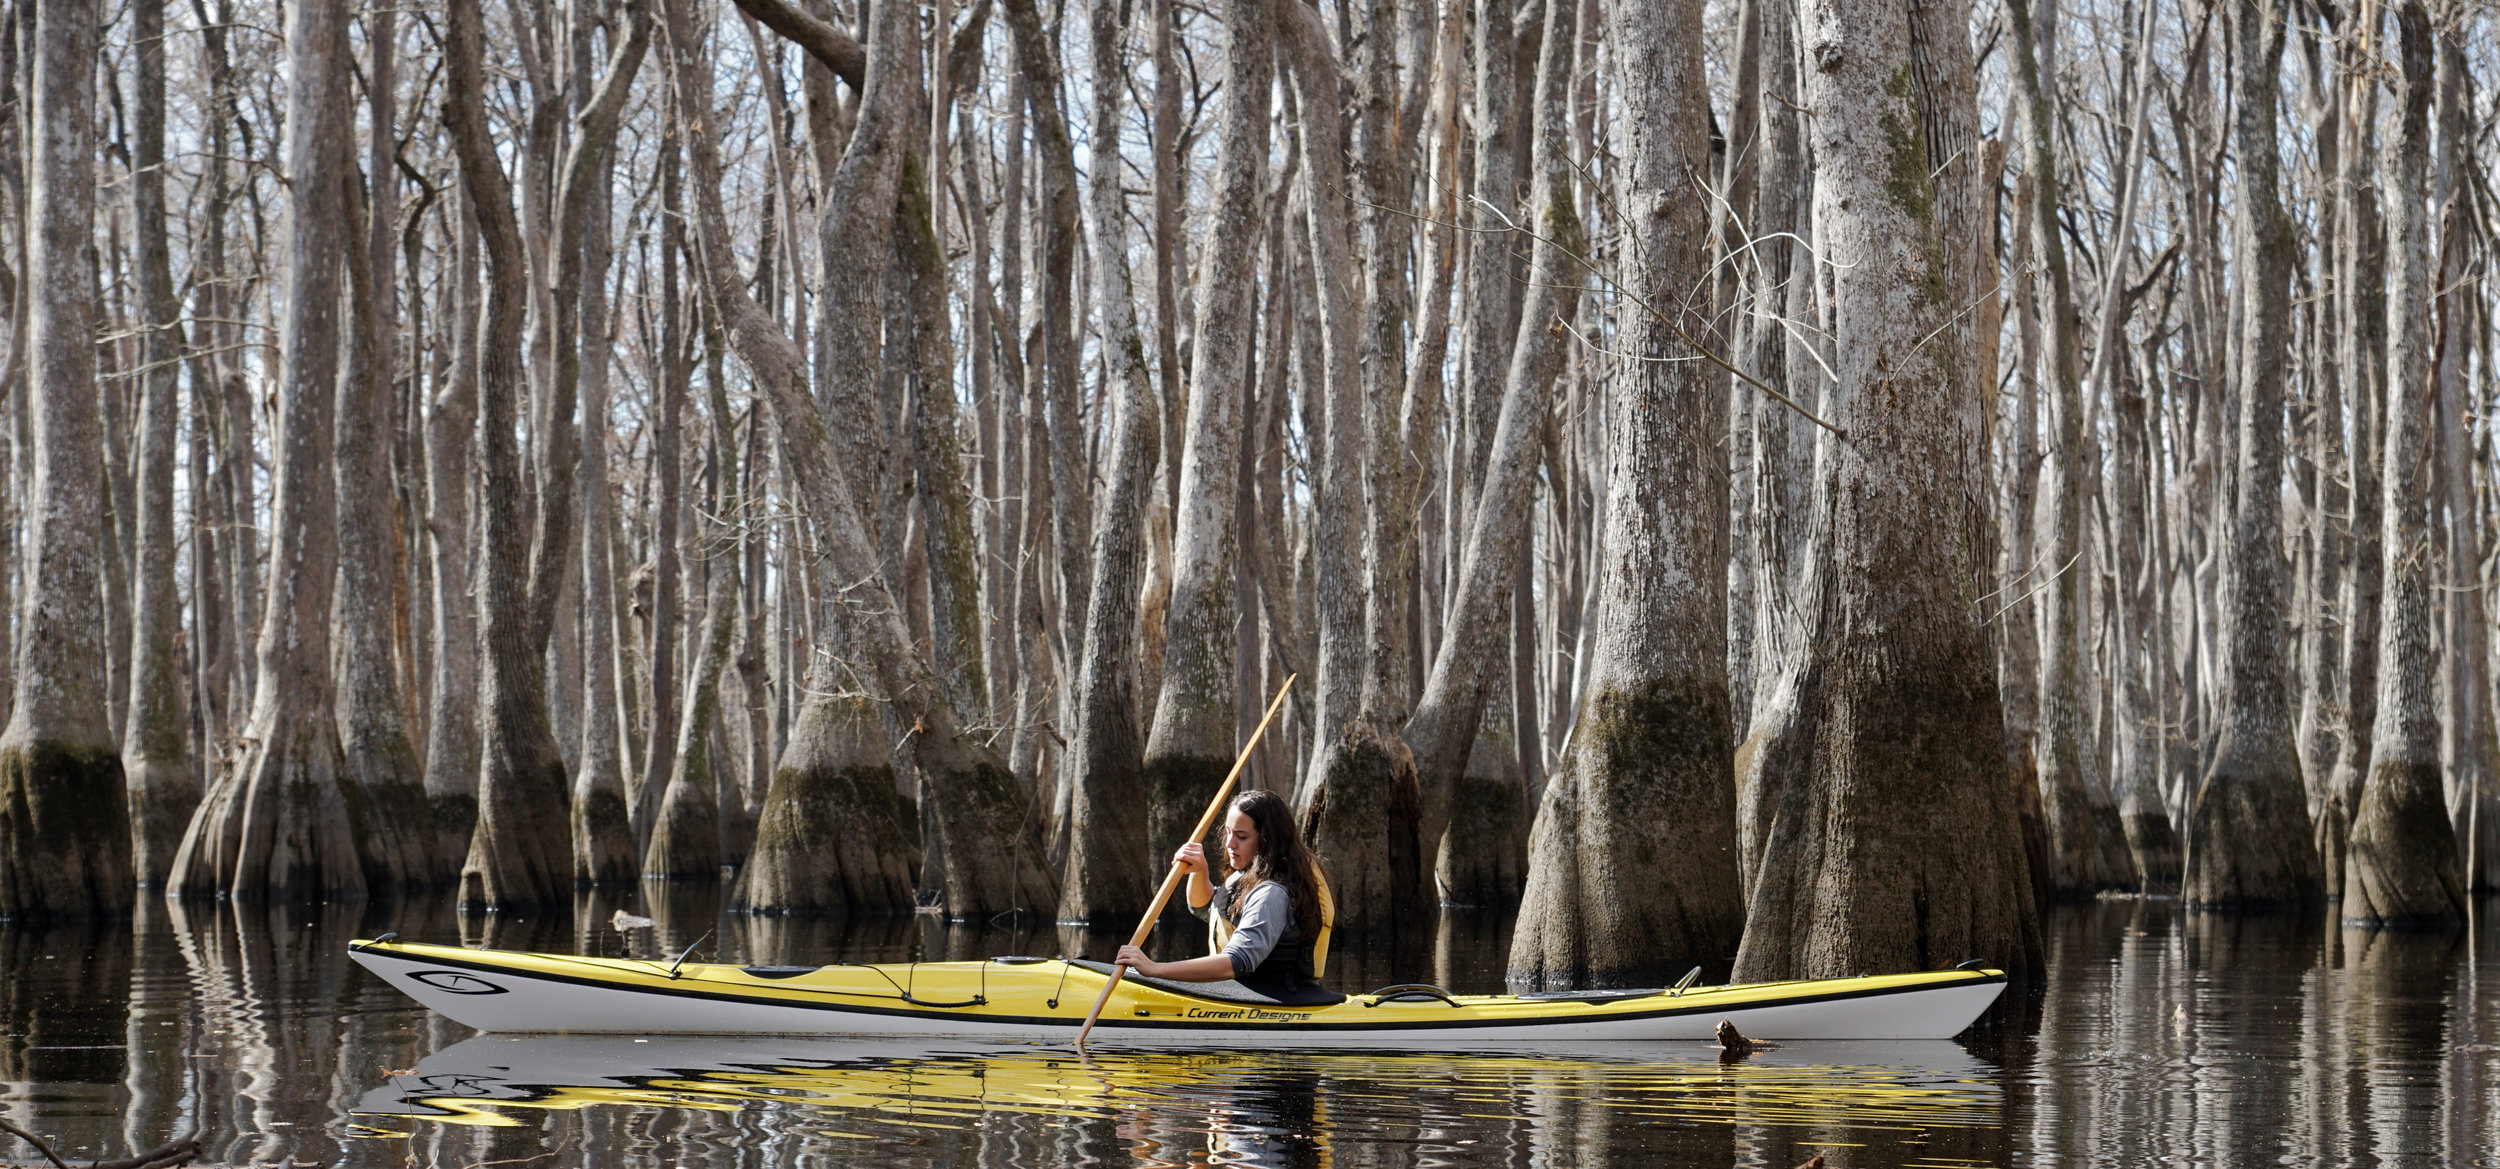 Kayak touring through the flooded old grown forests with a Greenland Paddle